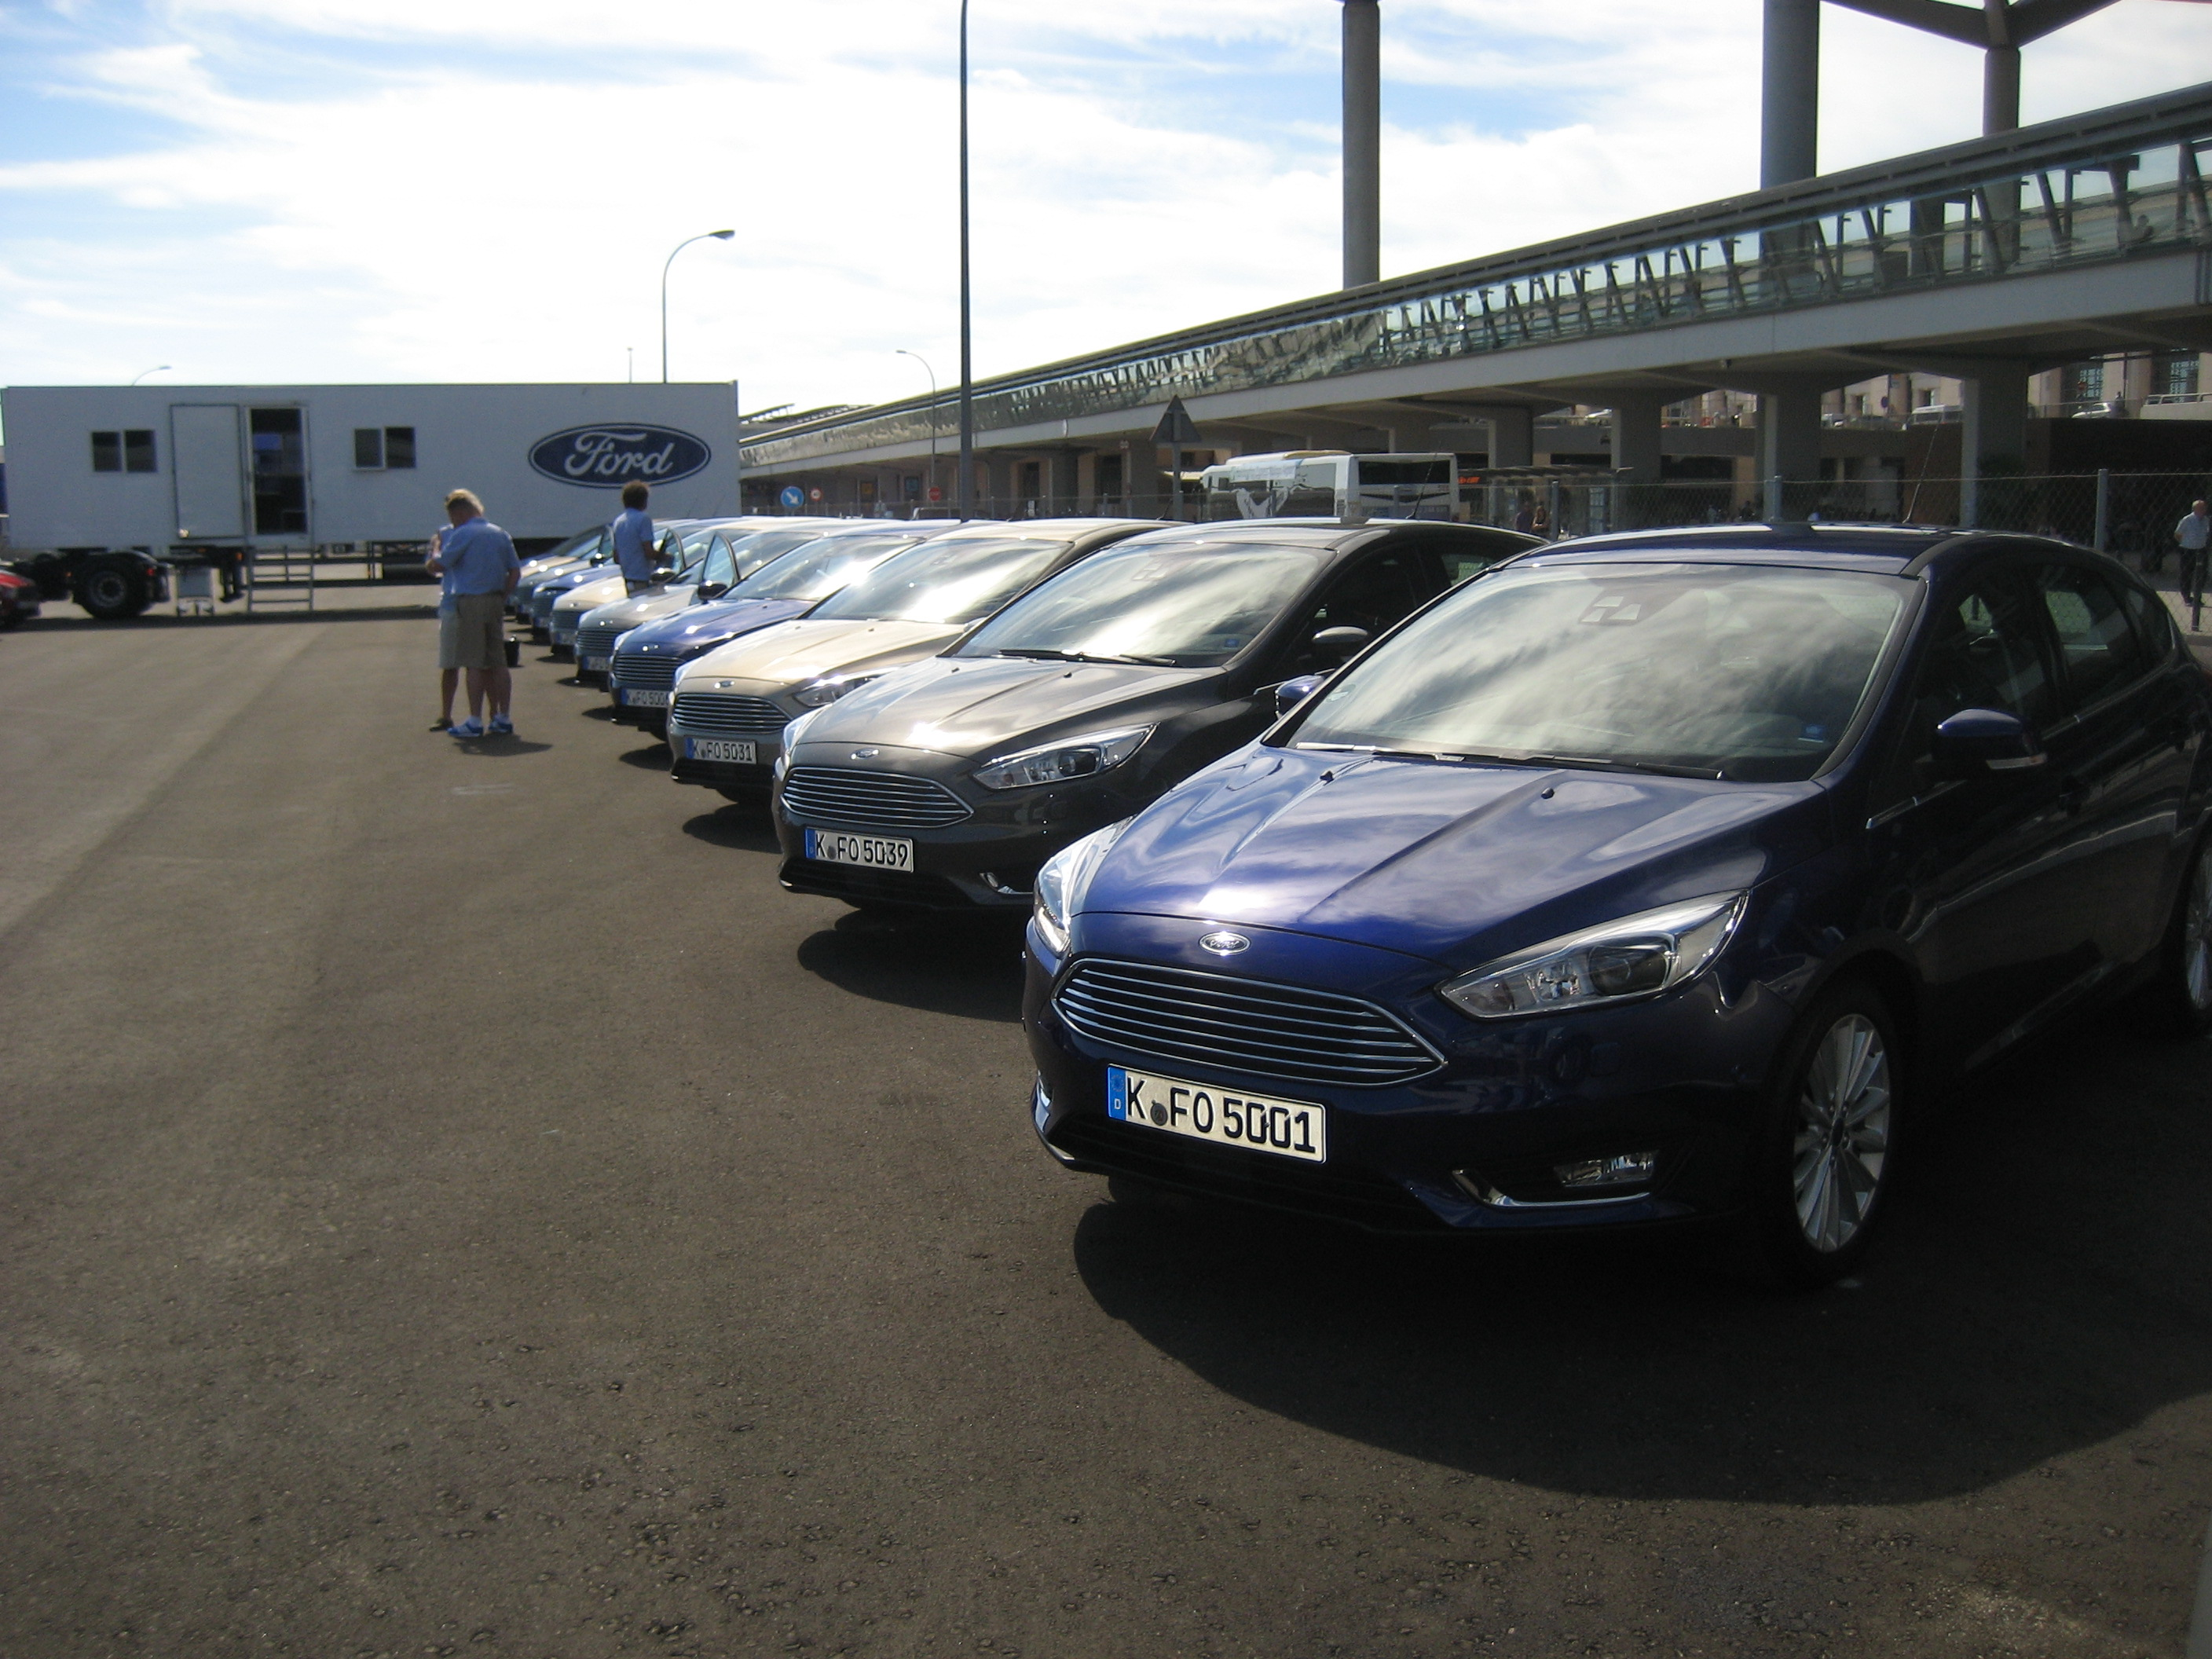 Commercial and press presentation of Ford in Malaga